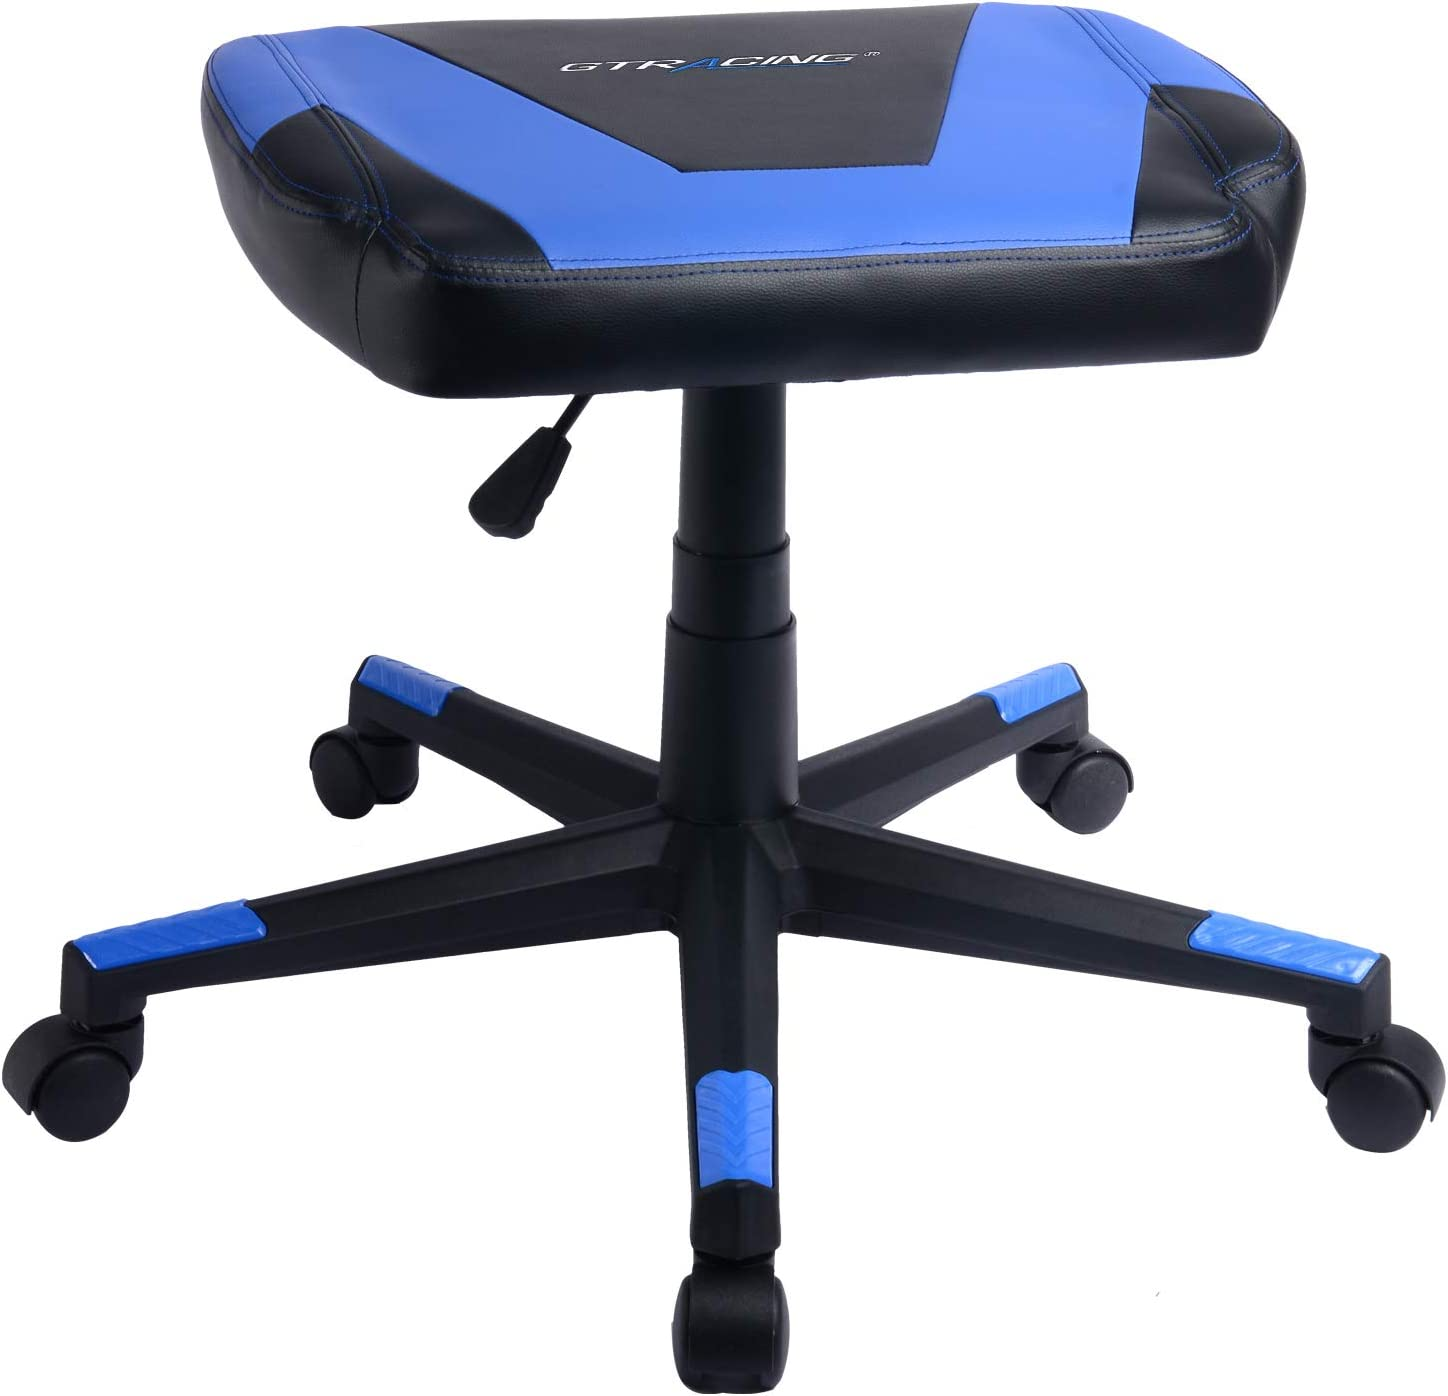 GTRACING Gaming Ottoman Footstool Chair Height Adjustable Footrest Spare Seat PU Leather Blue